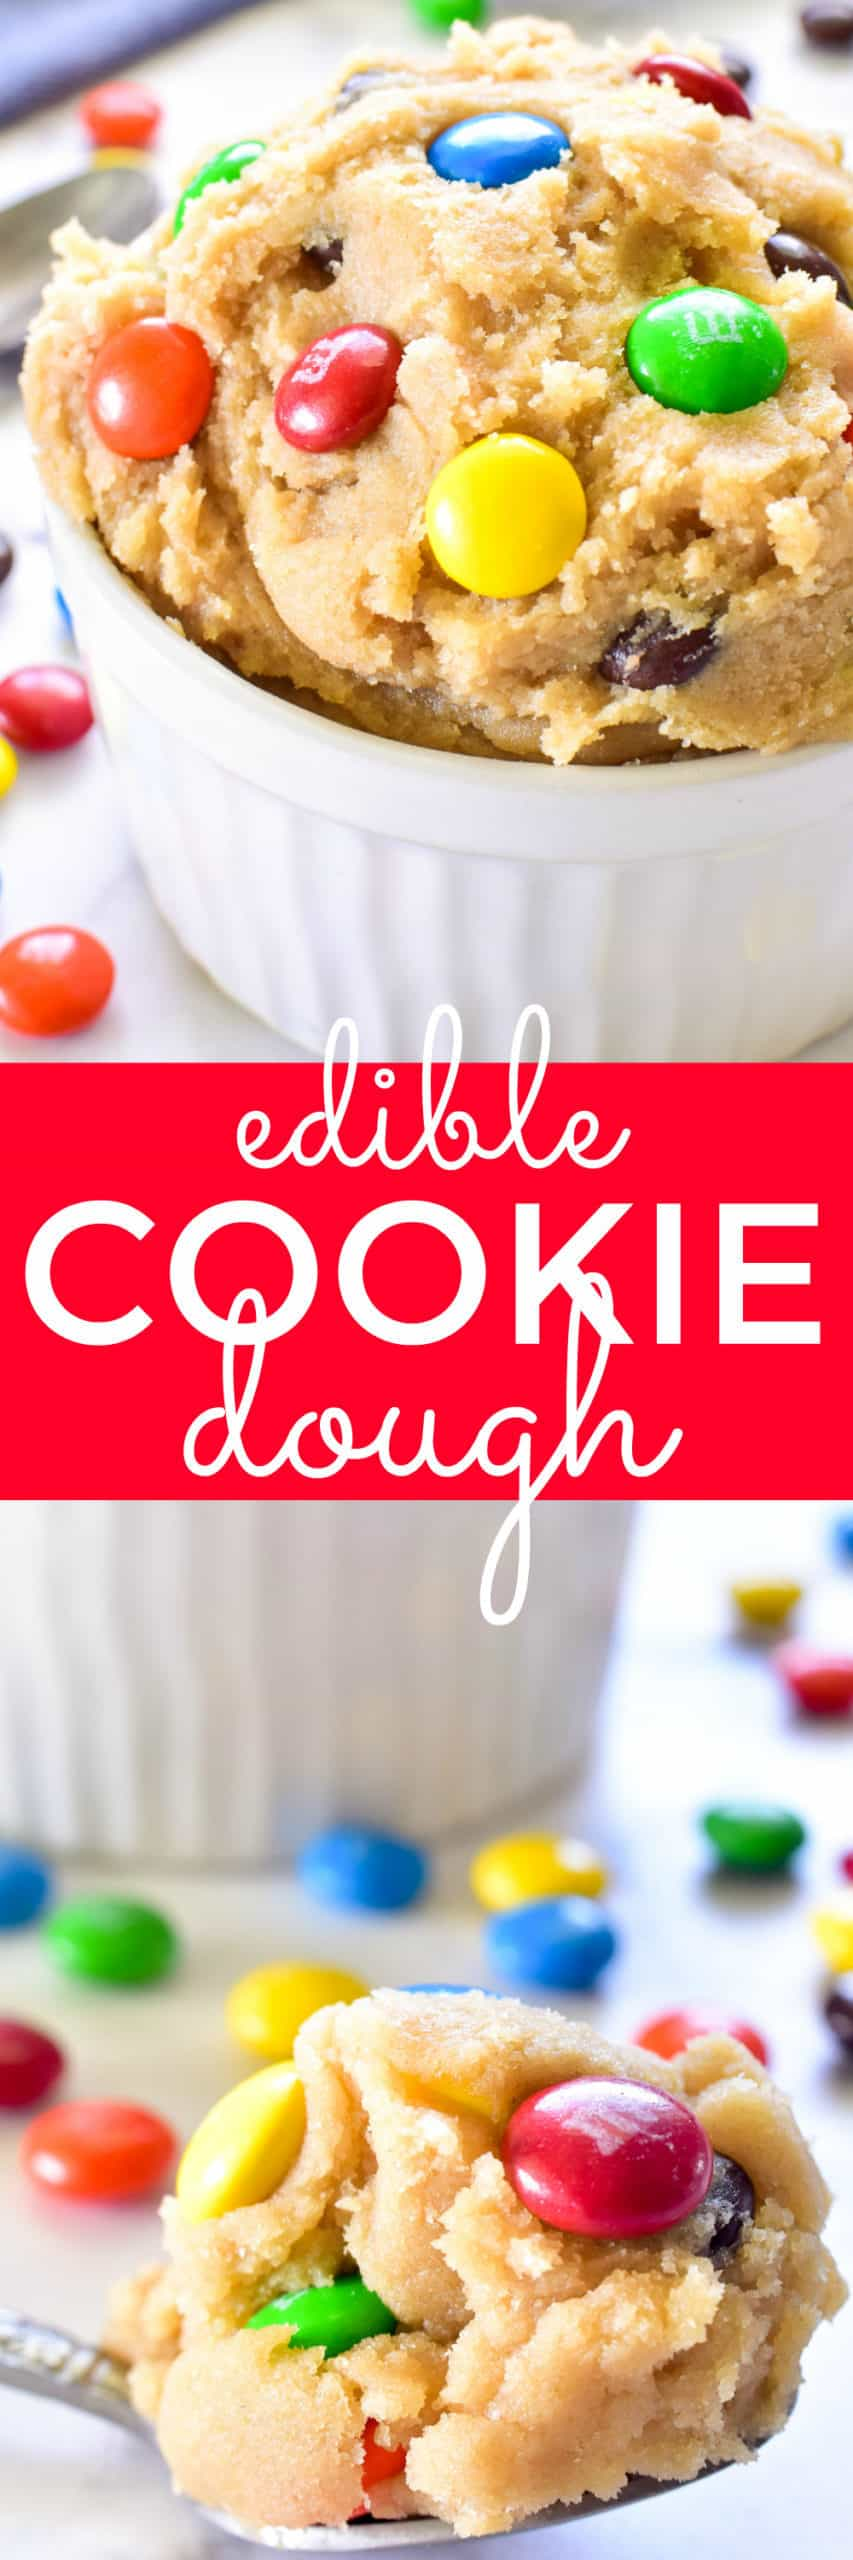 Collage image of Edible Cookie Dough